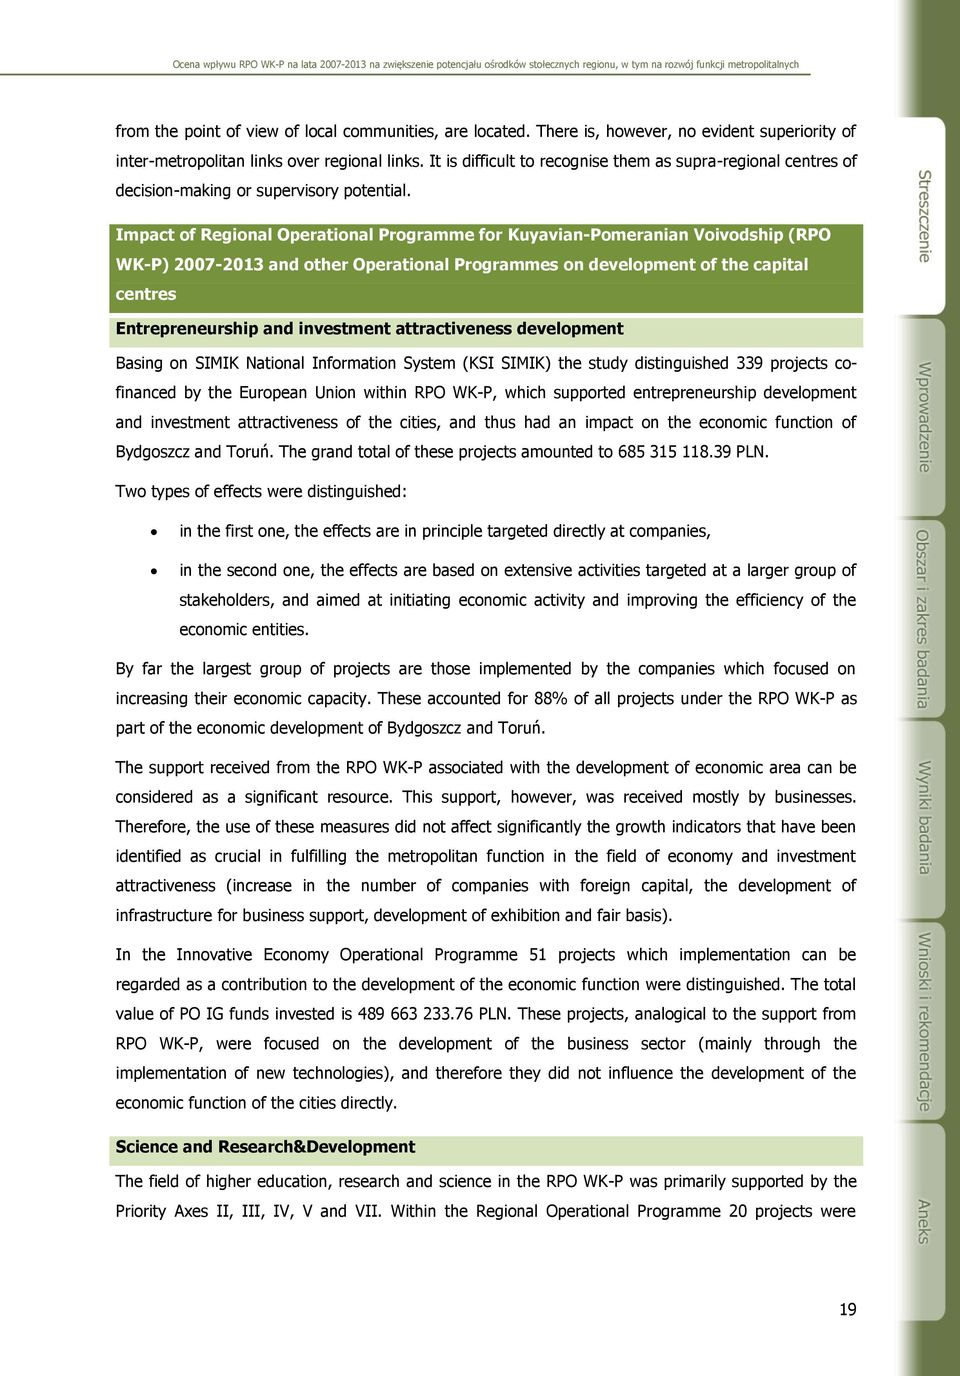 Impact of Regional Operational Programme for Kuyavian-Pomeranian Voivodship (RPO WK-P) 2007-2013 and other Operational Programmes on development of the capital centres Entrepreneurship and investment